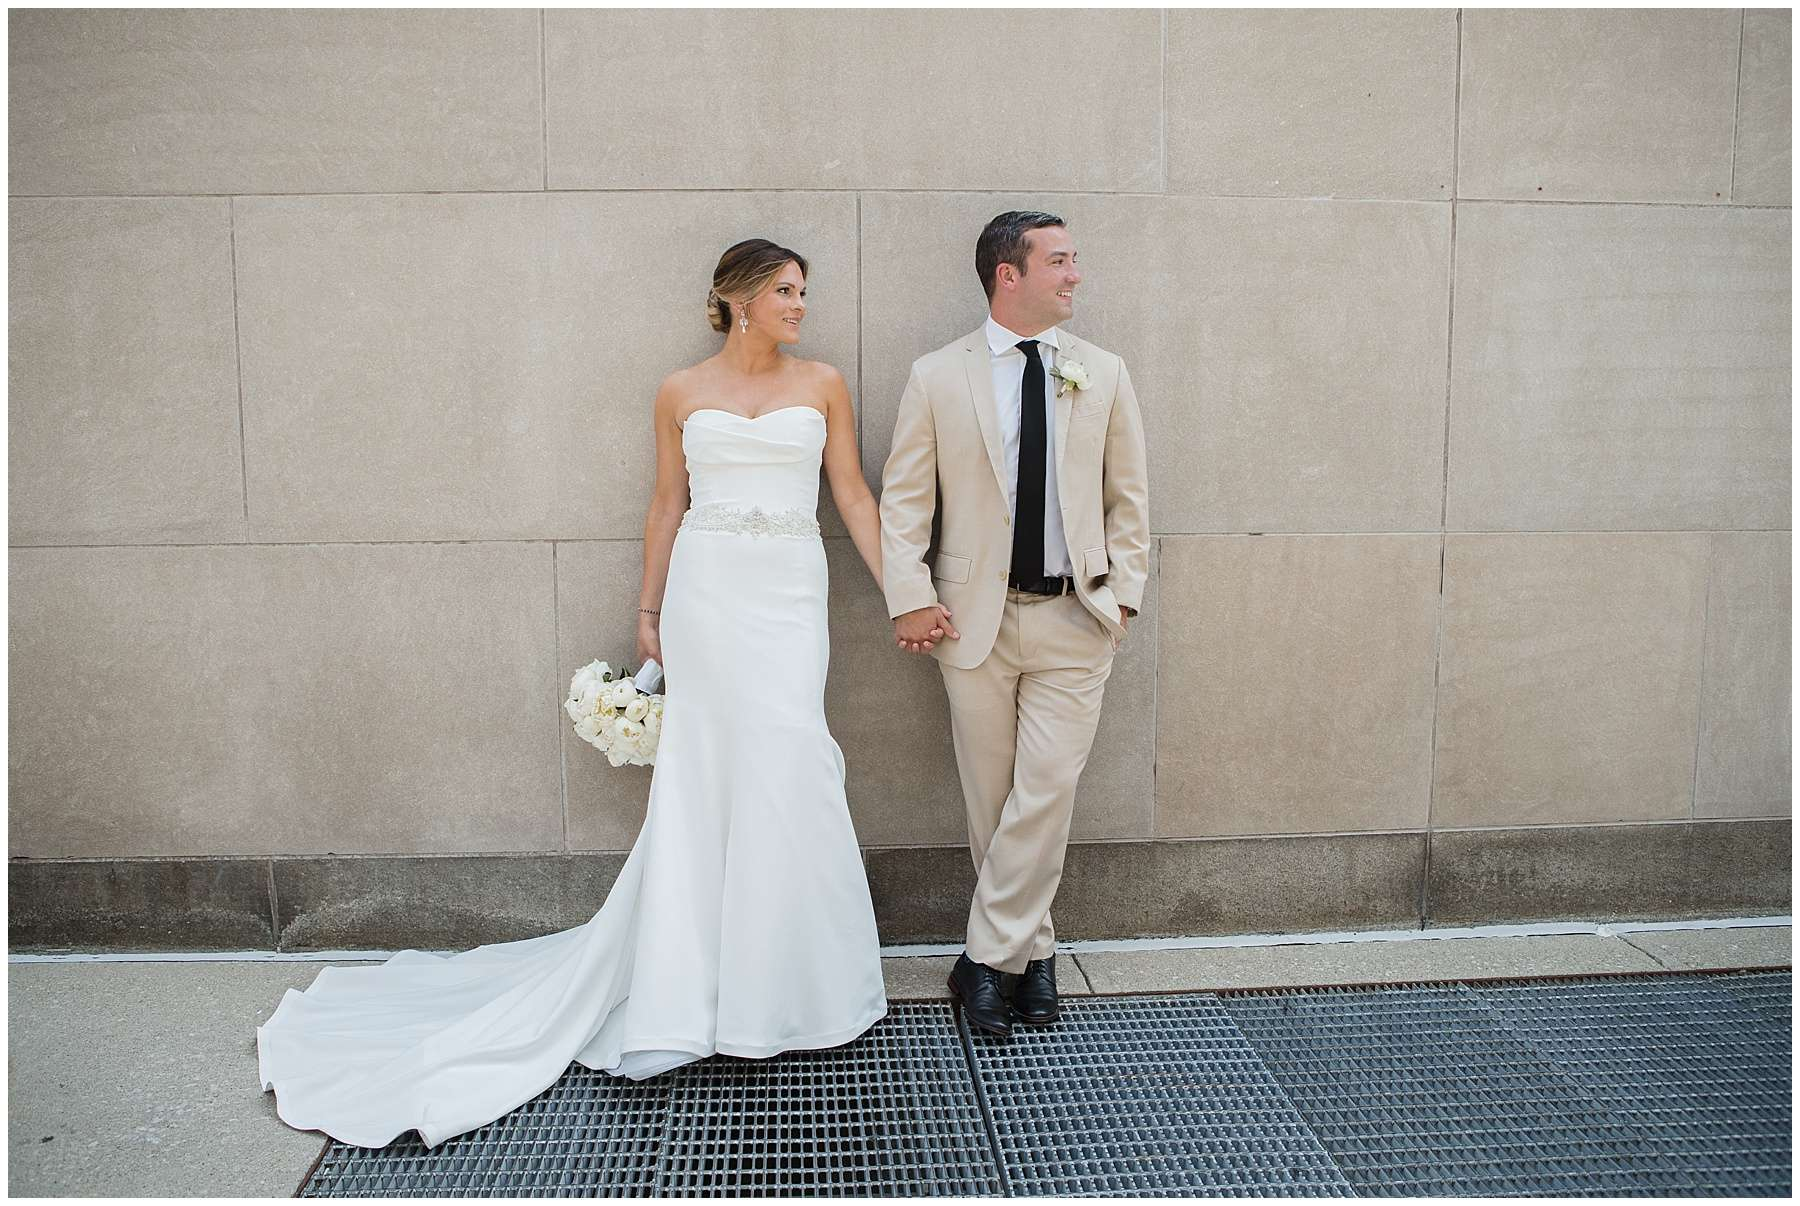 A bride and groom stand side by side along a cement building holding hands and smiling